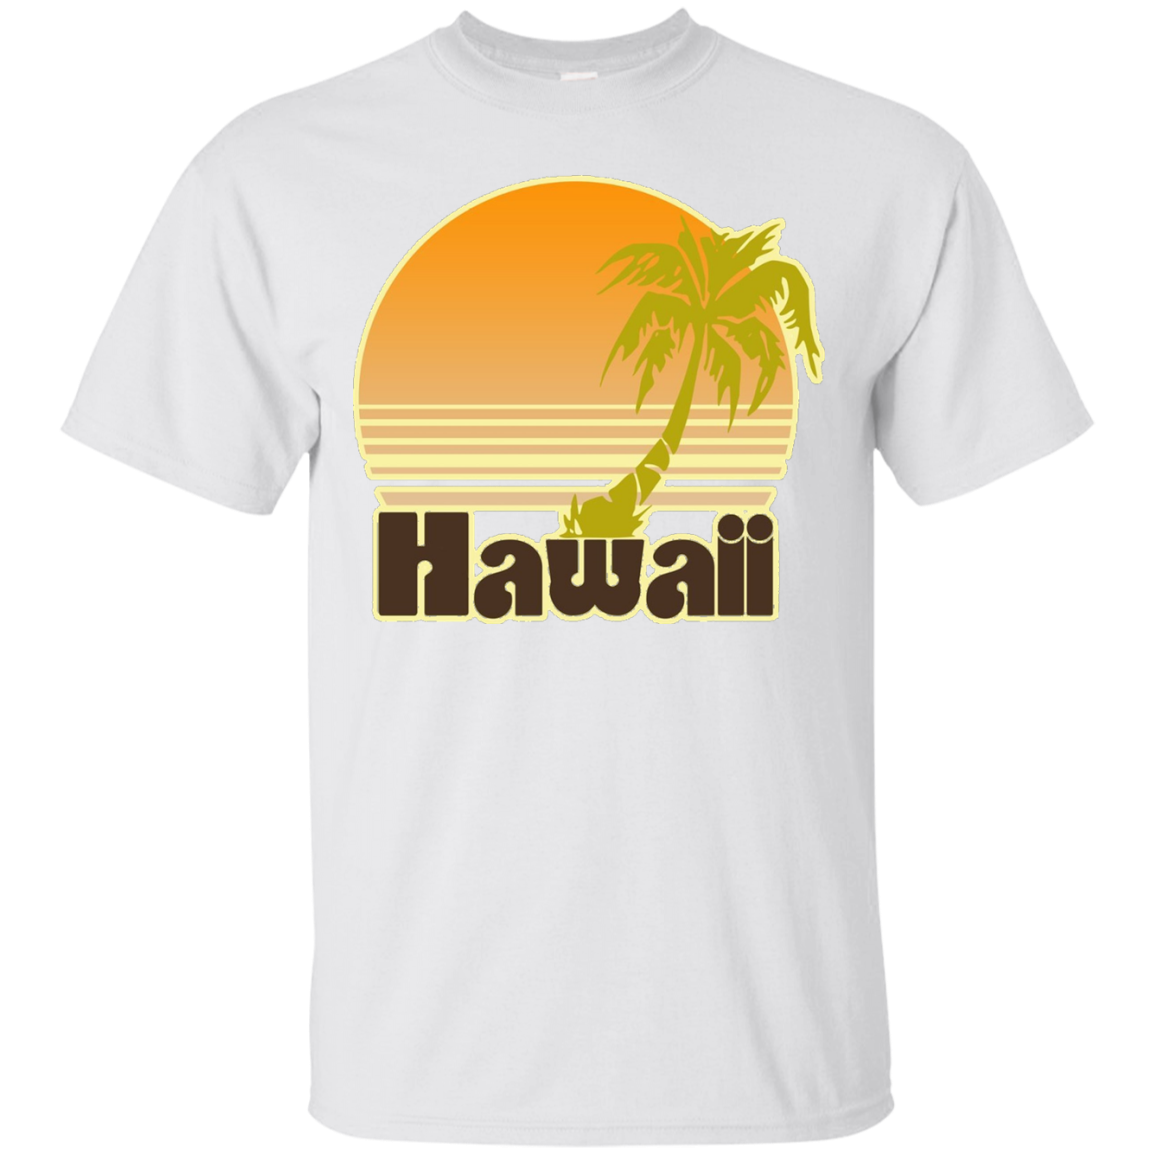 Retro Hawaii shirt for Hawaiian vacation vintage t-shirt